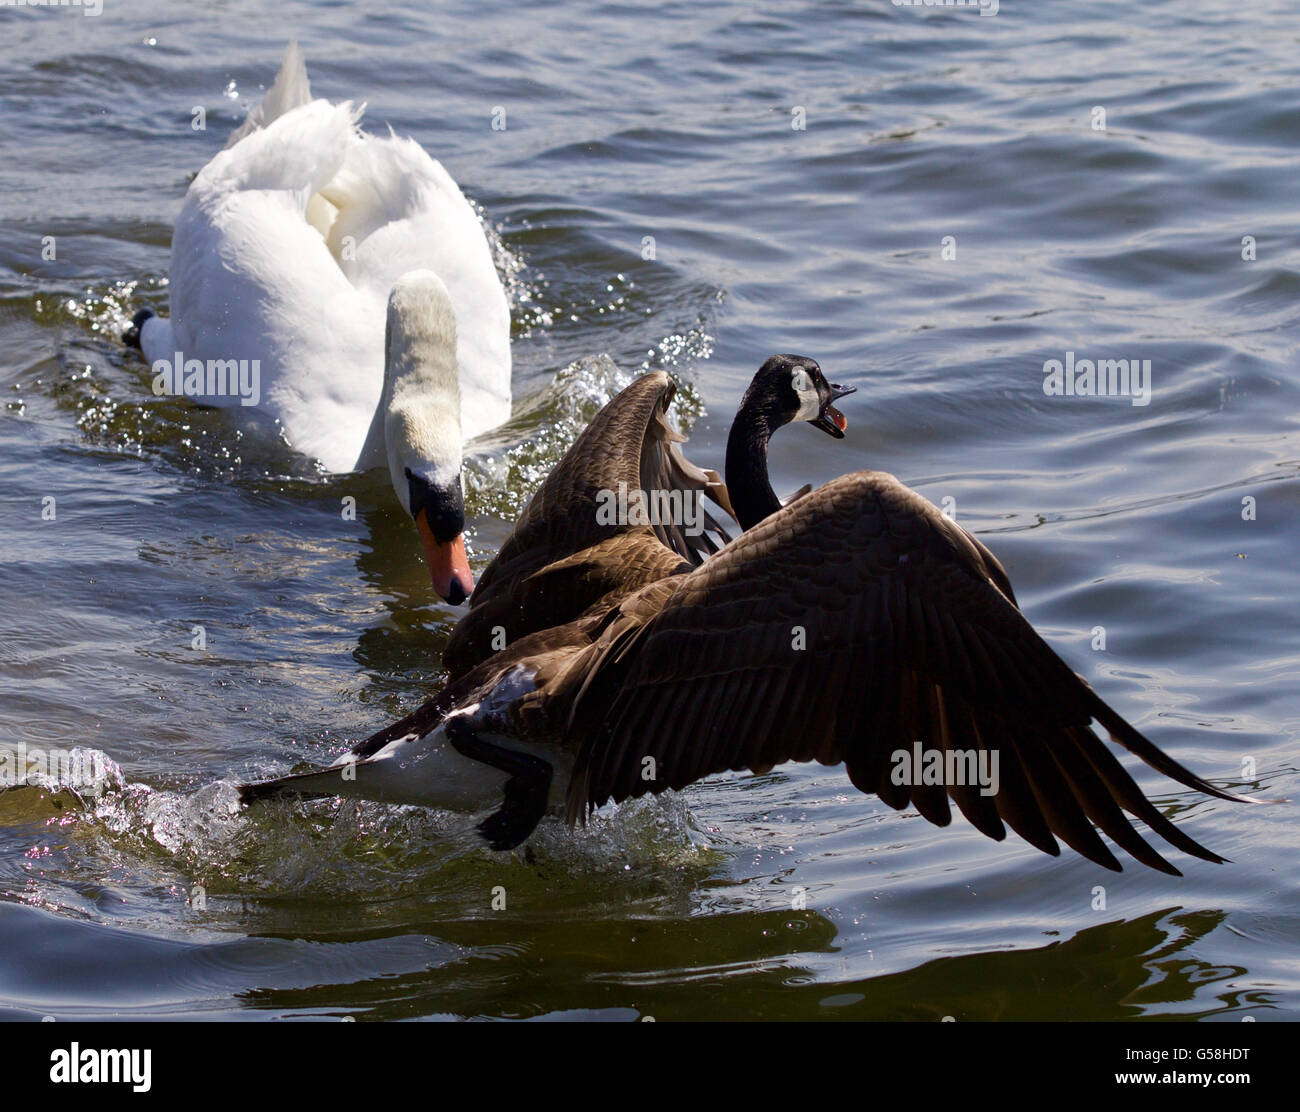 Amazing emotional moment with the swan attacking the canada goose amazing emotional moment with the swan attacking the canada goose biocorpaavc